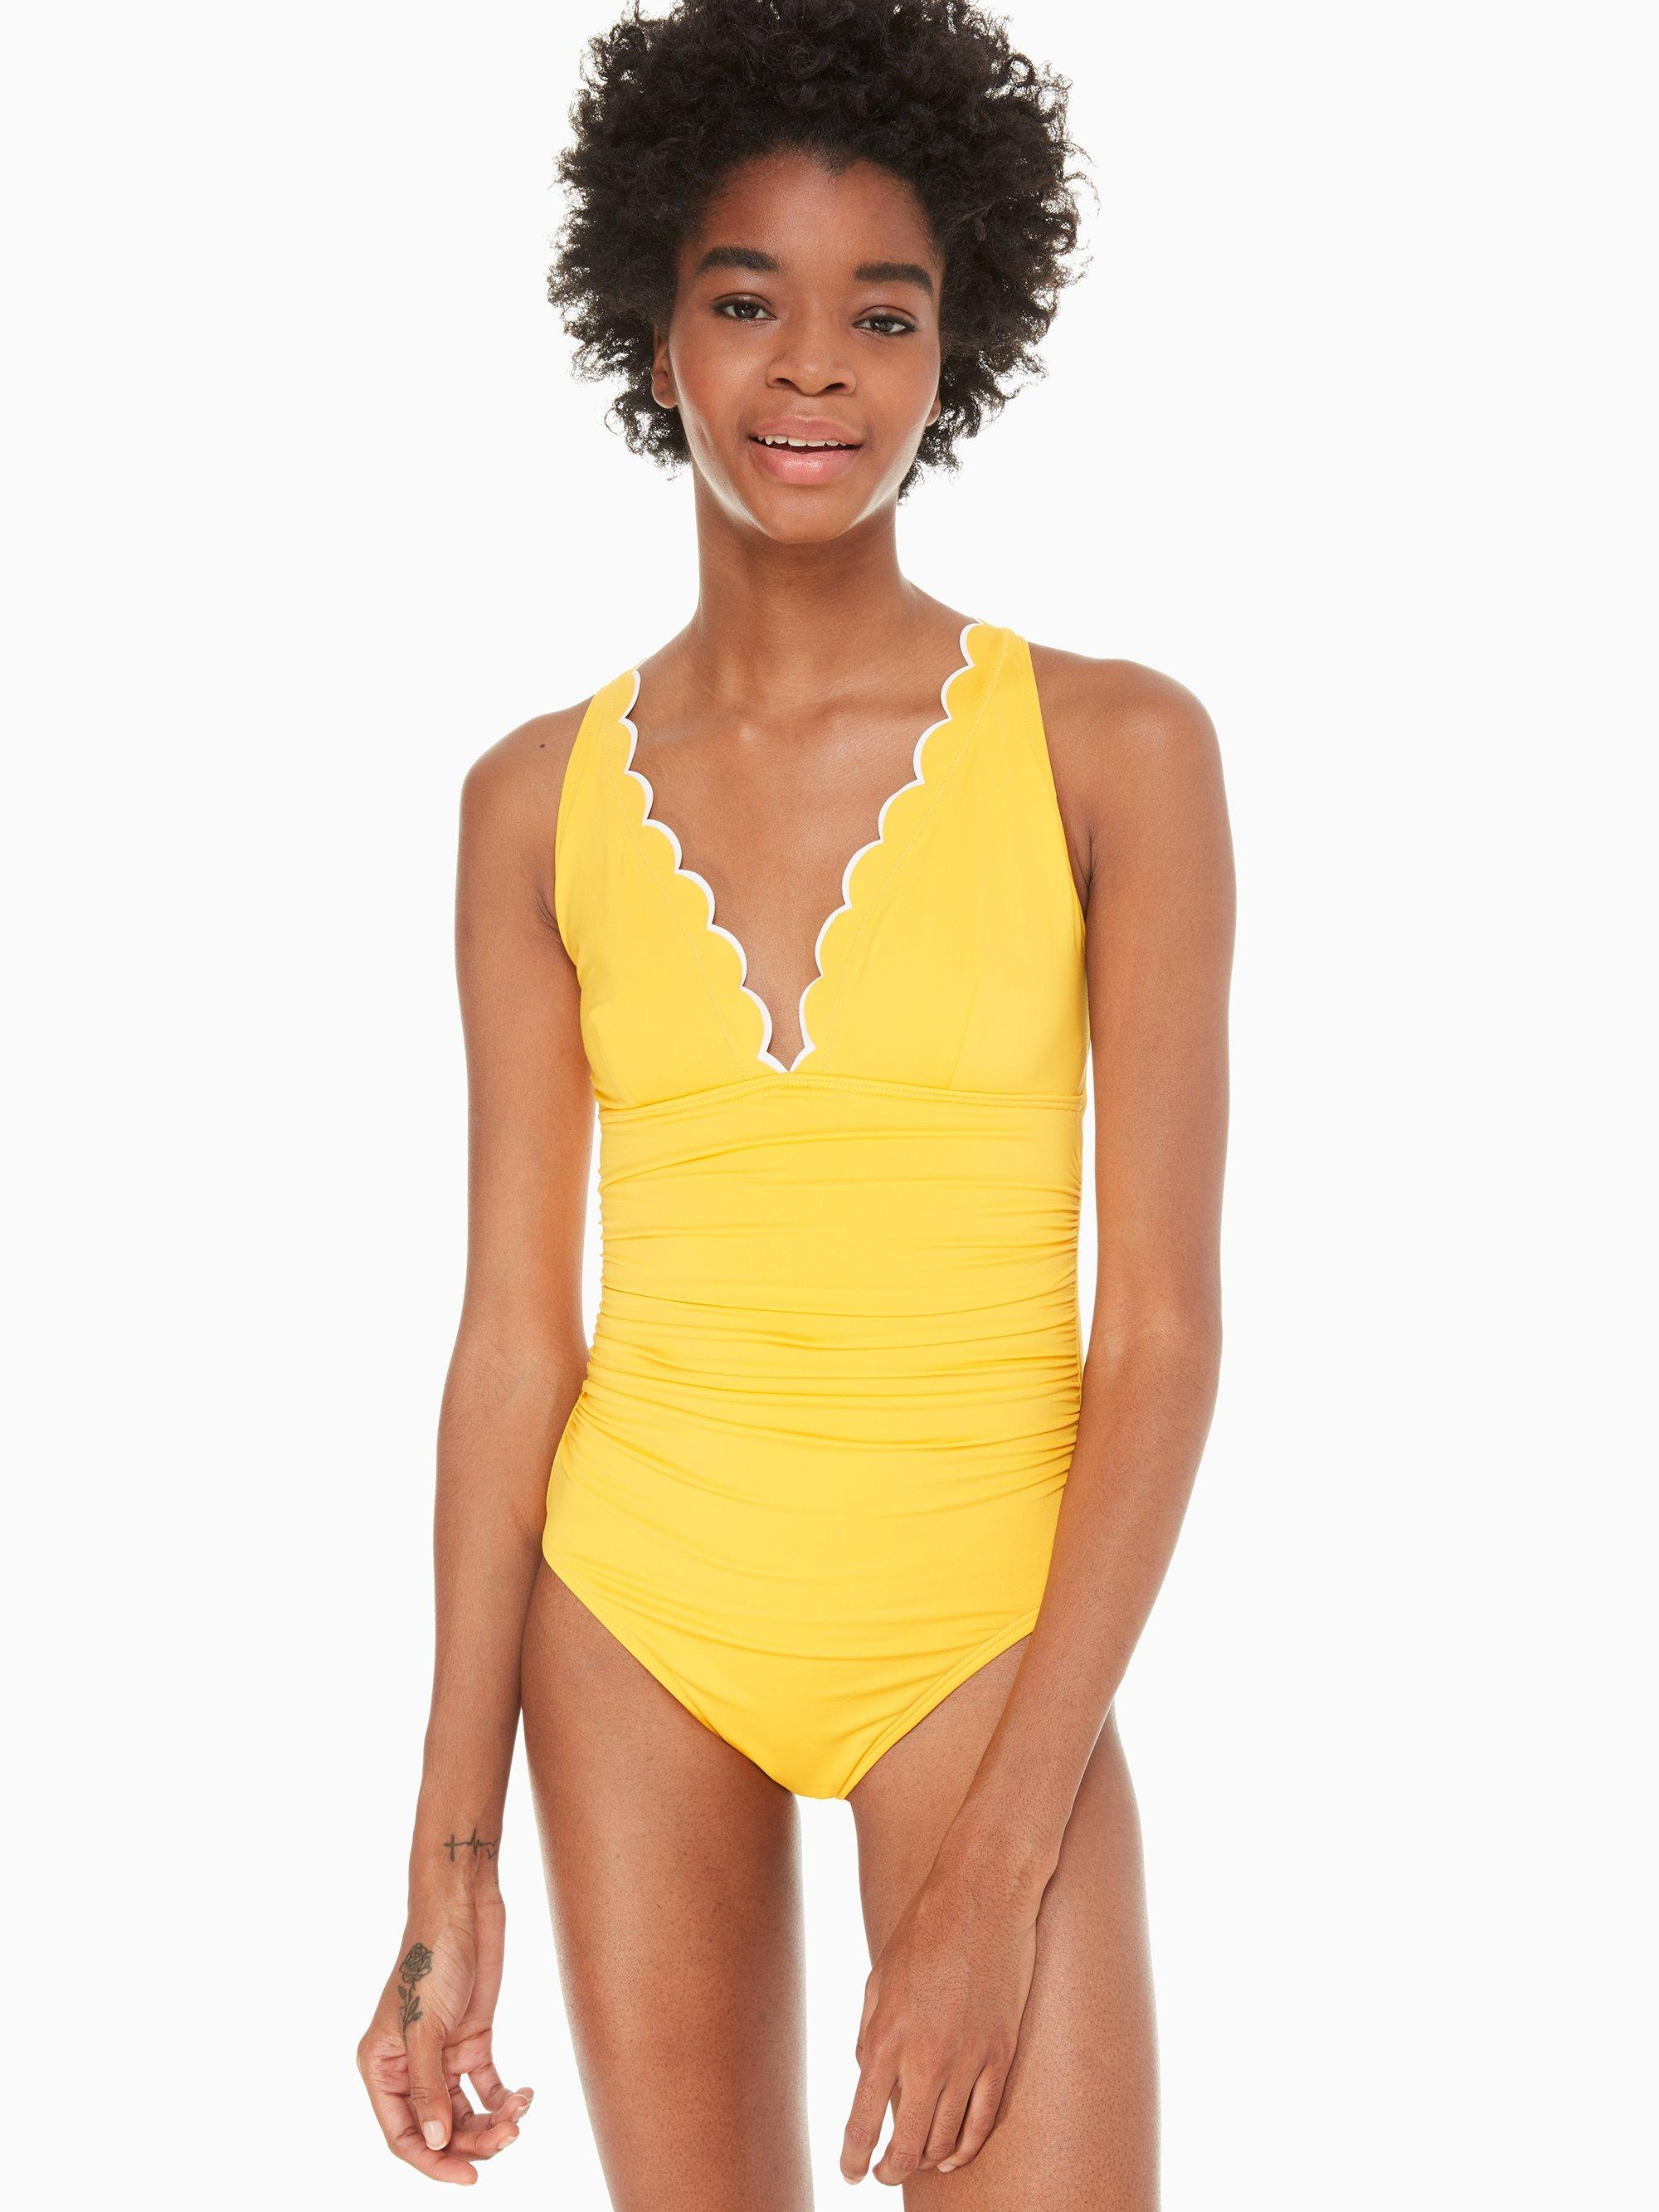 c169737162c91 Kate Spade. Women's Yellow Fort Tilden Contrast Scalloped Plunge One-piece